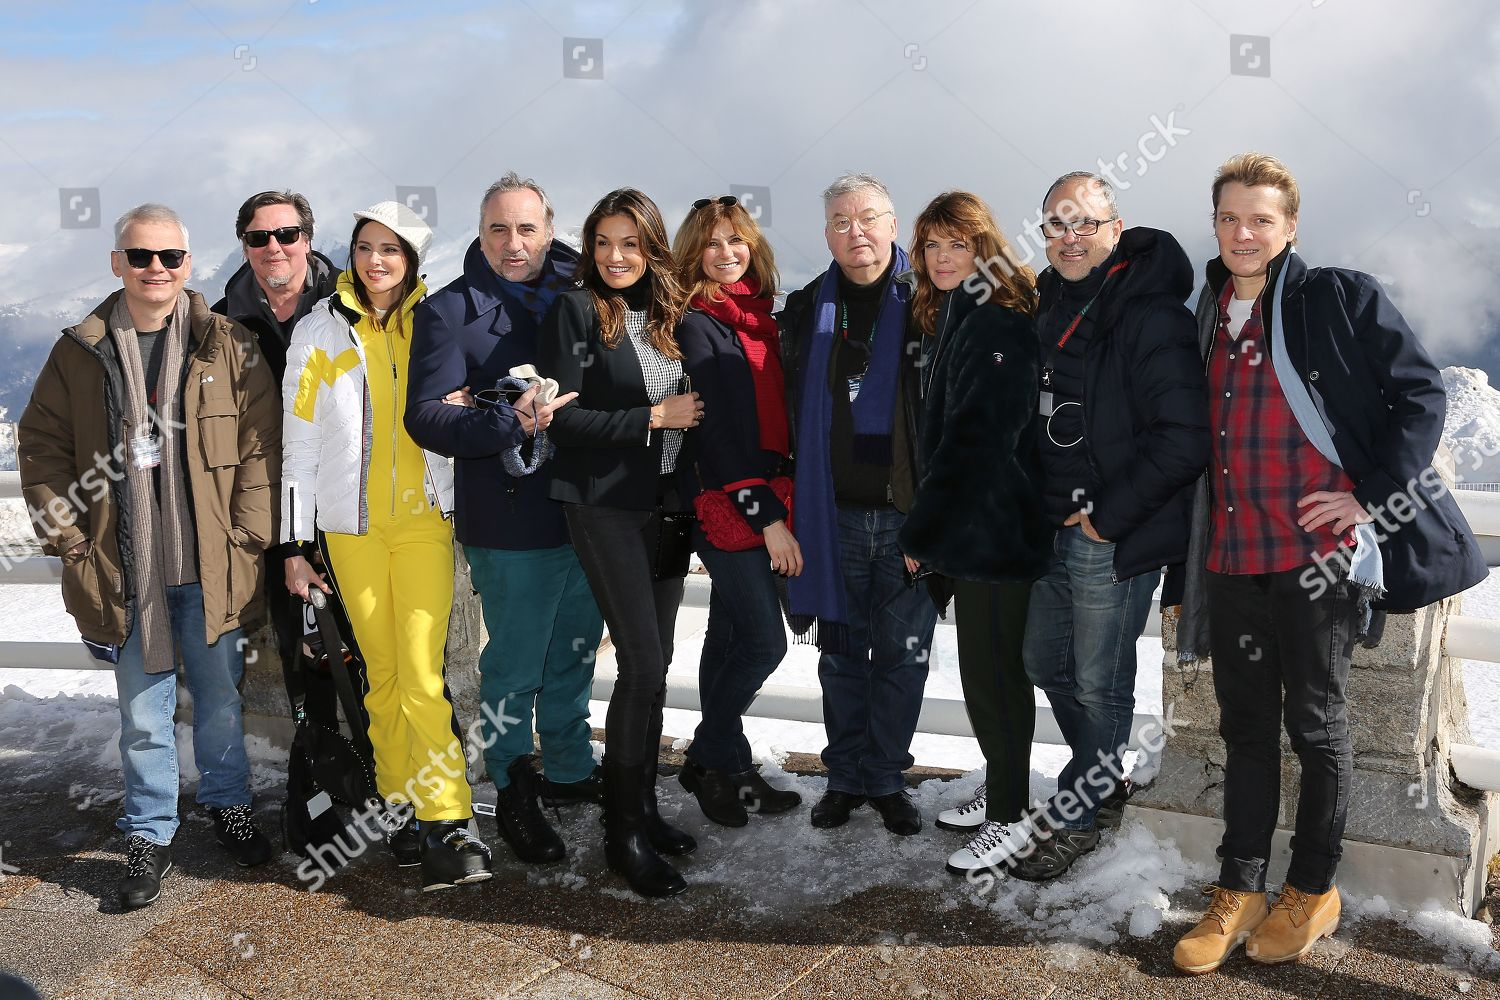 Stock photo of Luchon TV Creations Festival, Bagneres-de-Luchon, France - 07 Feb 2019